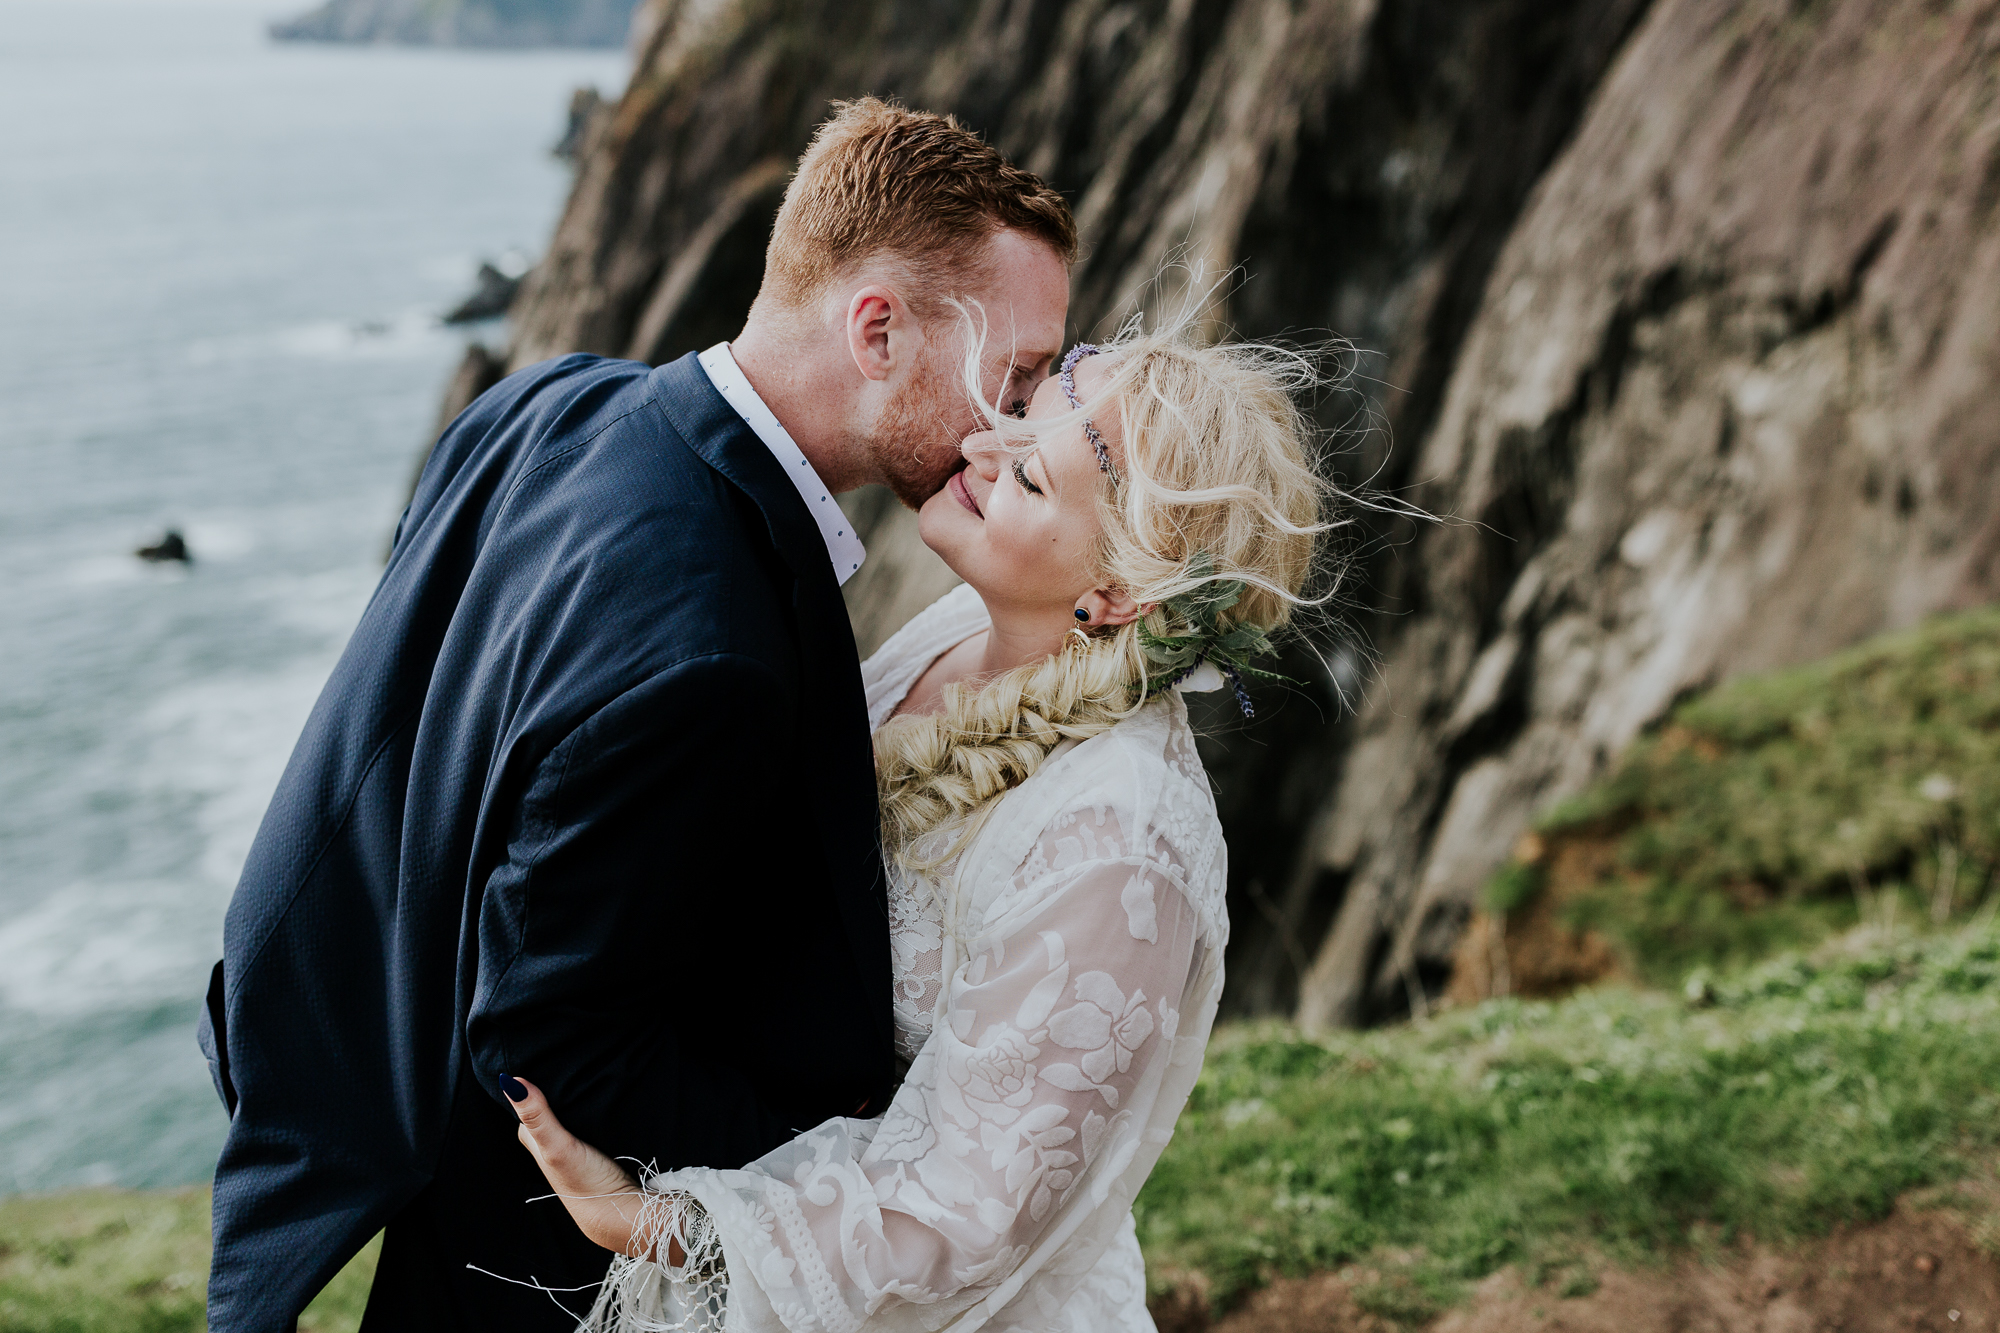 intimate oregon coast wedding photographer oregon elopement photographer boho adventurous elopement inspiration midwest wedding photographer